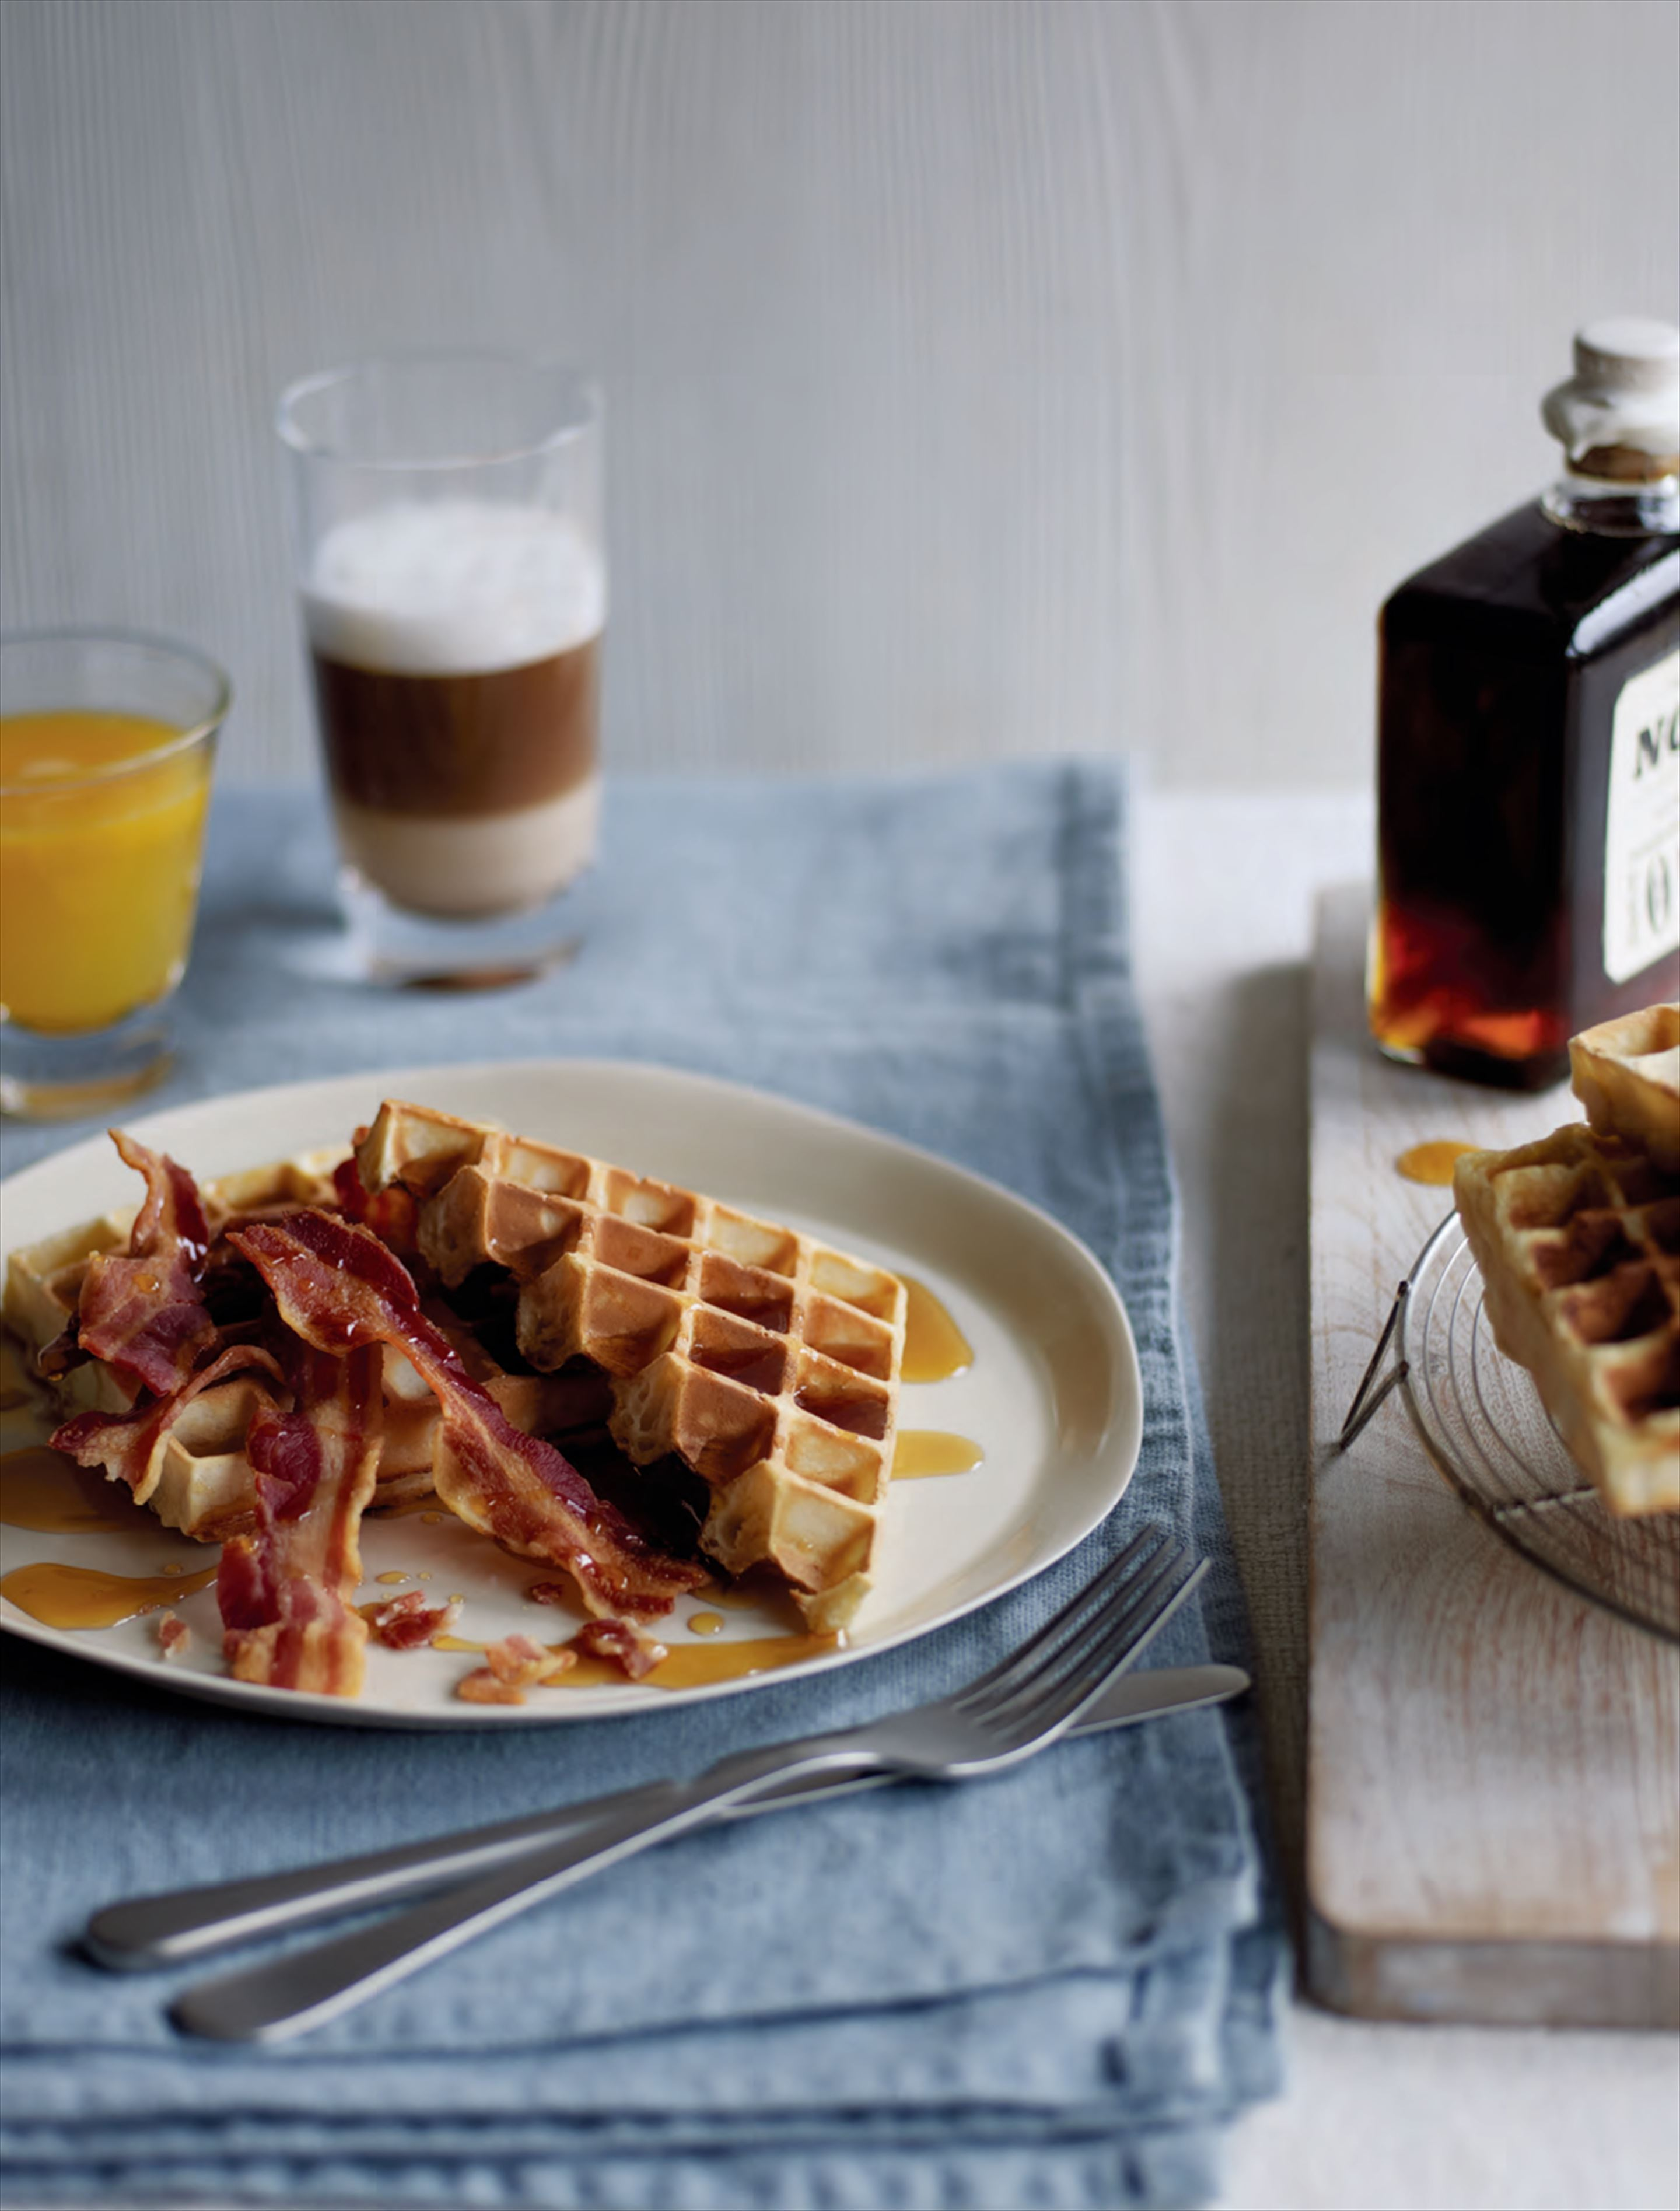 Waffles with bacon & maple syrup